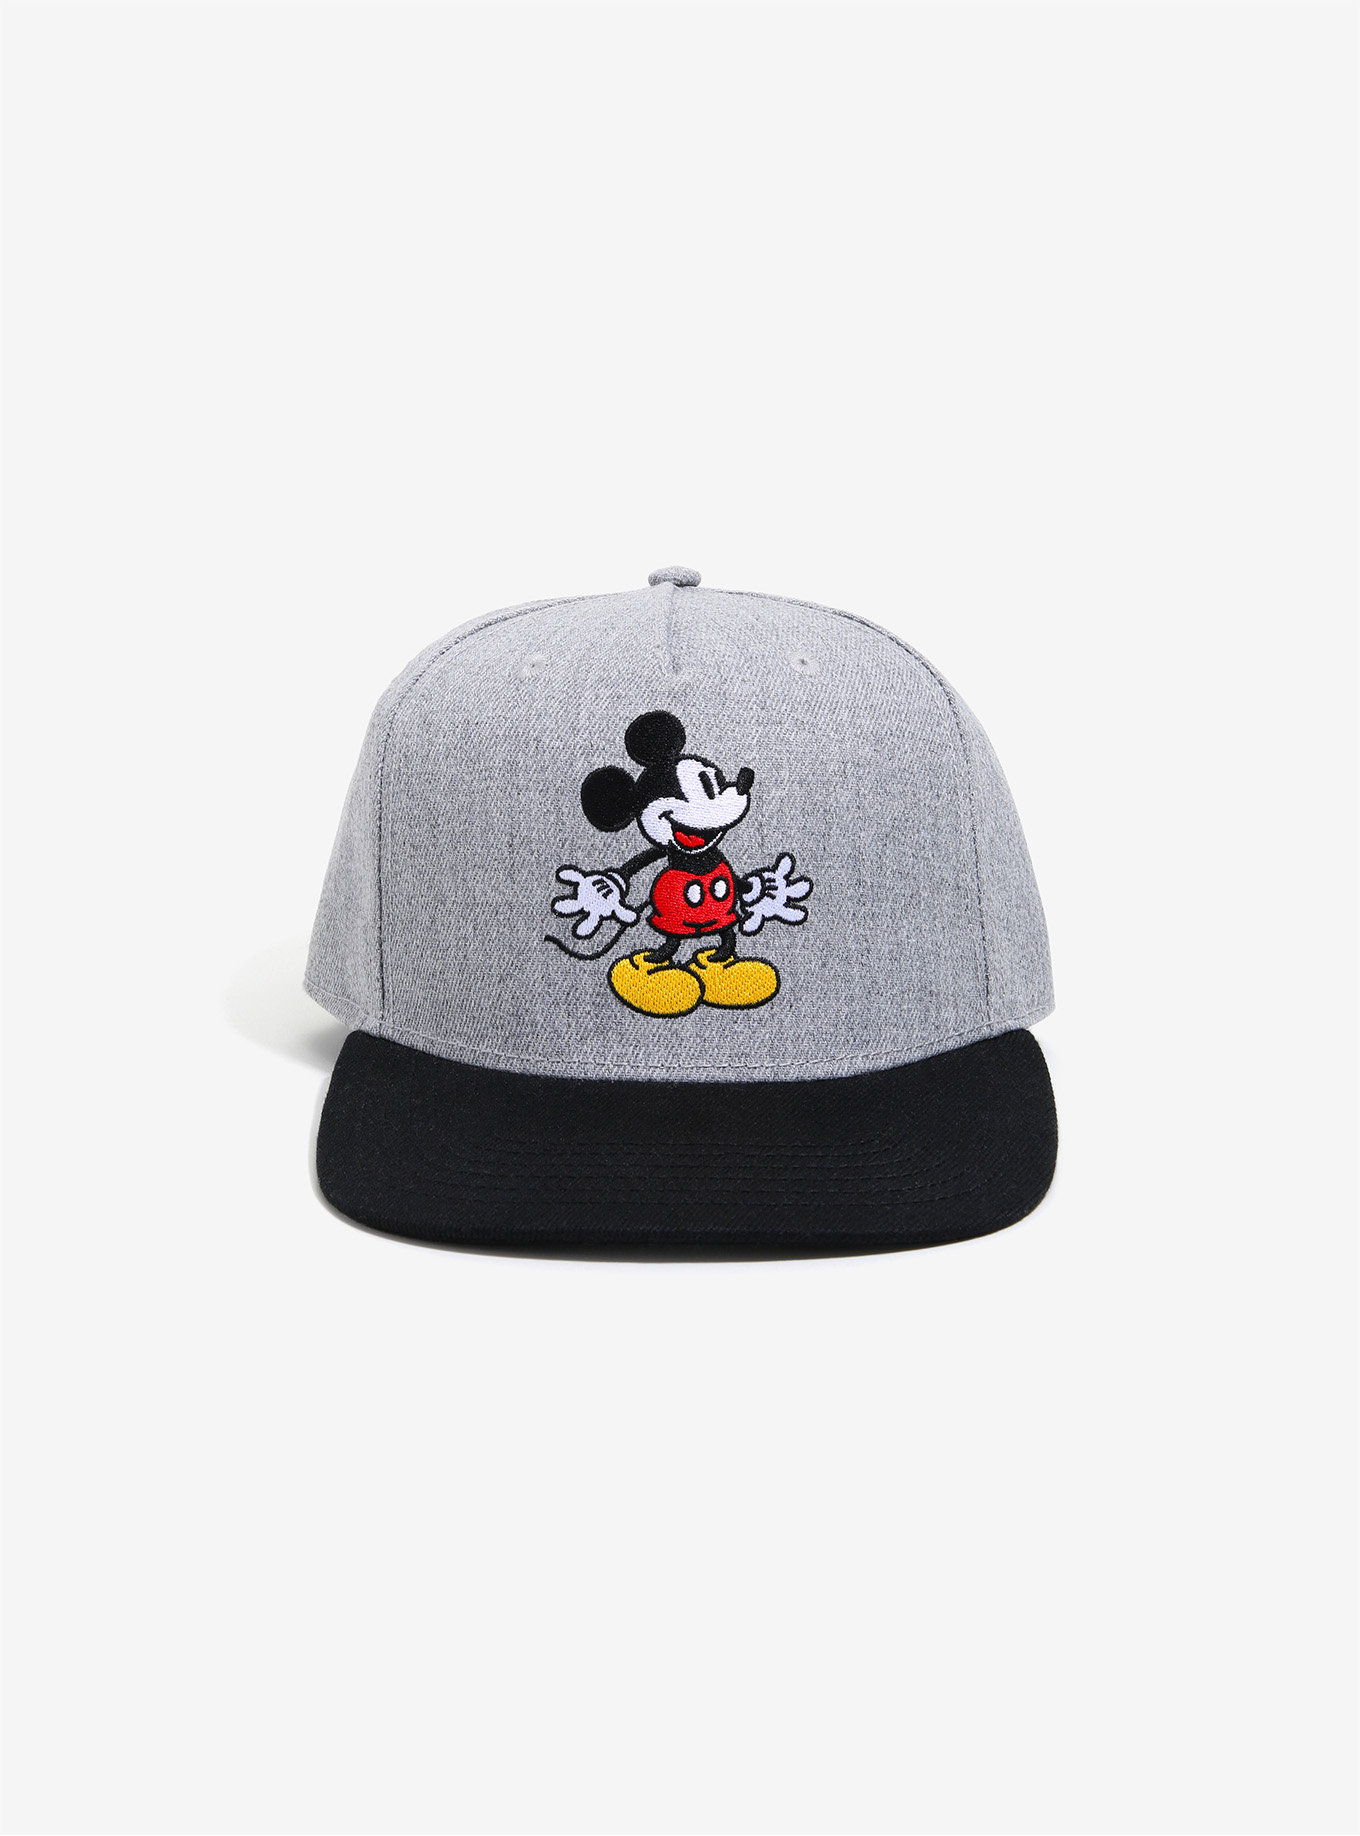 mickey mouse hat.jpg